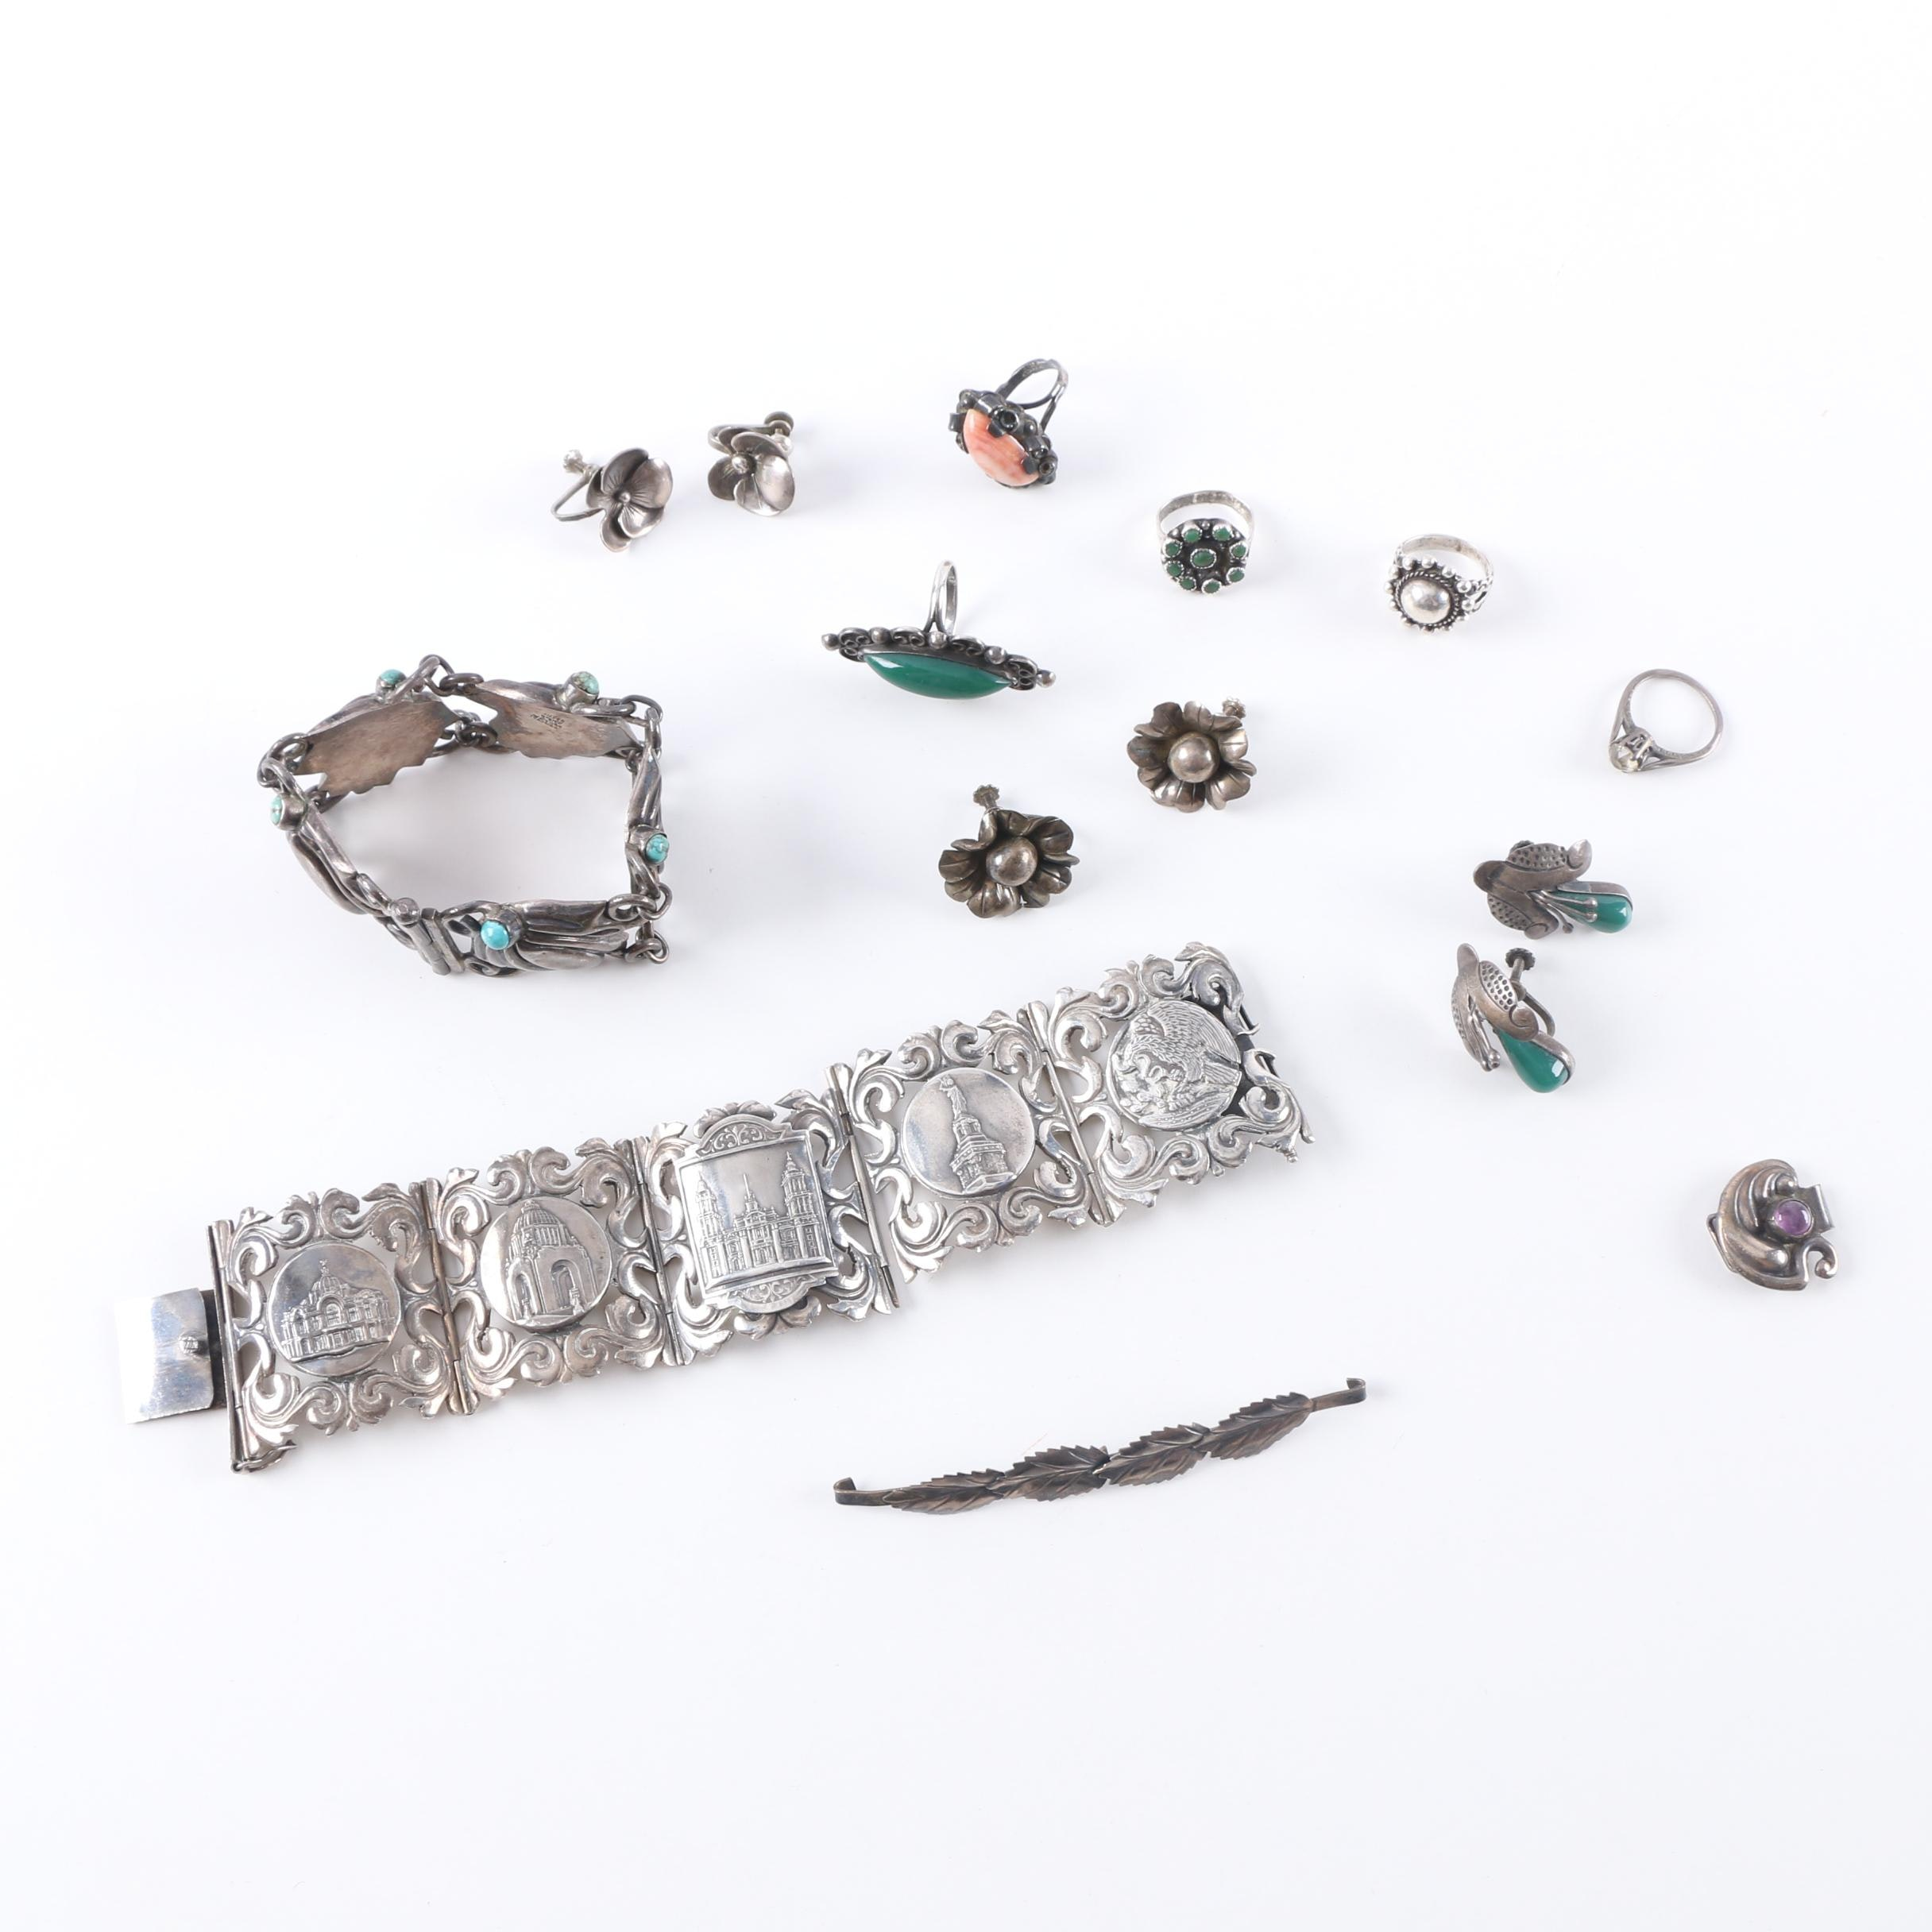 Assorted Sterling Silver Jewelry Including a Turquoise Bracelet